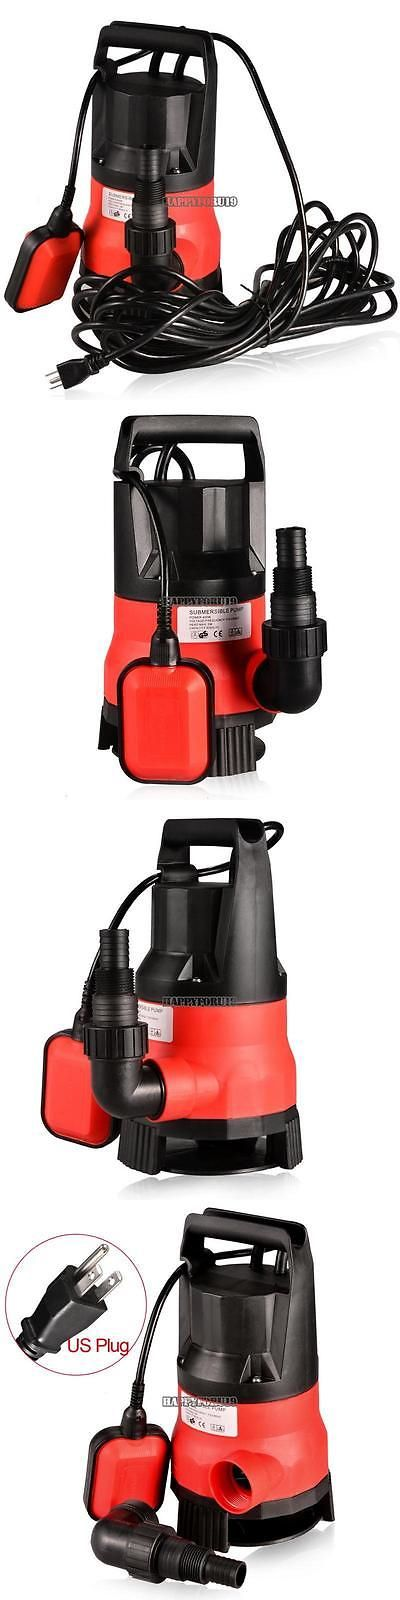 Pumps 42132: New 400W 1.2Hp Clear Dirty Water Submersible Pump Pool Pond 110V 21000Gph Multi -> BUY IT NOW ONLY: $42.47 on eBay!